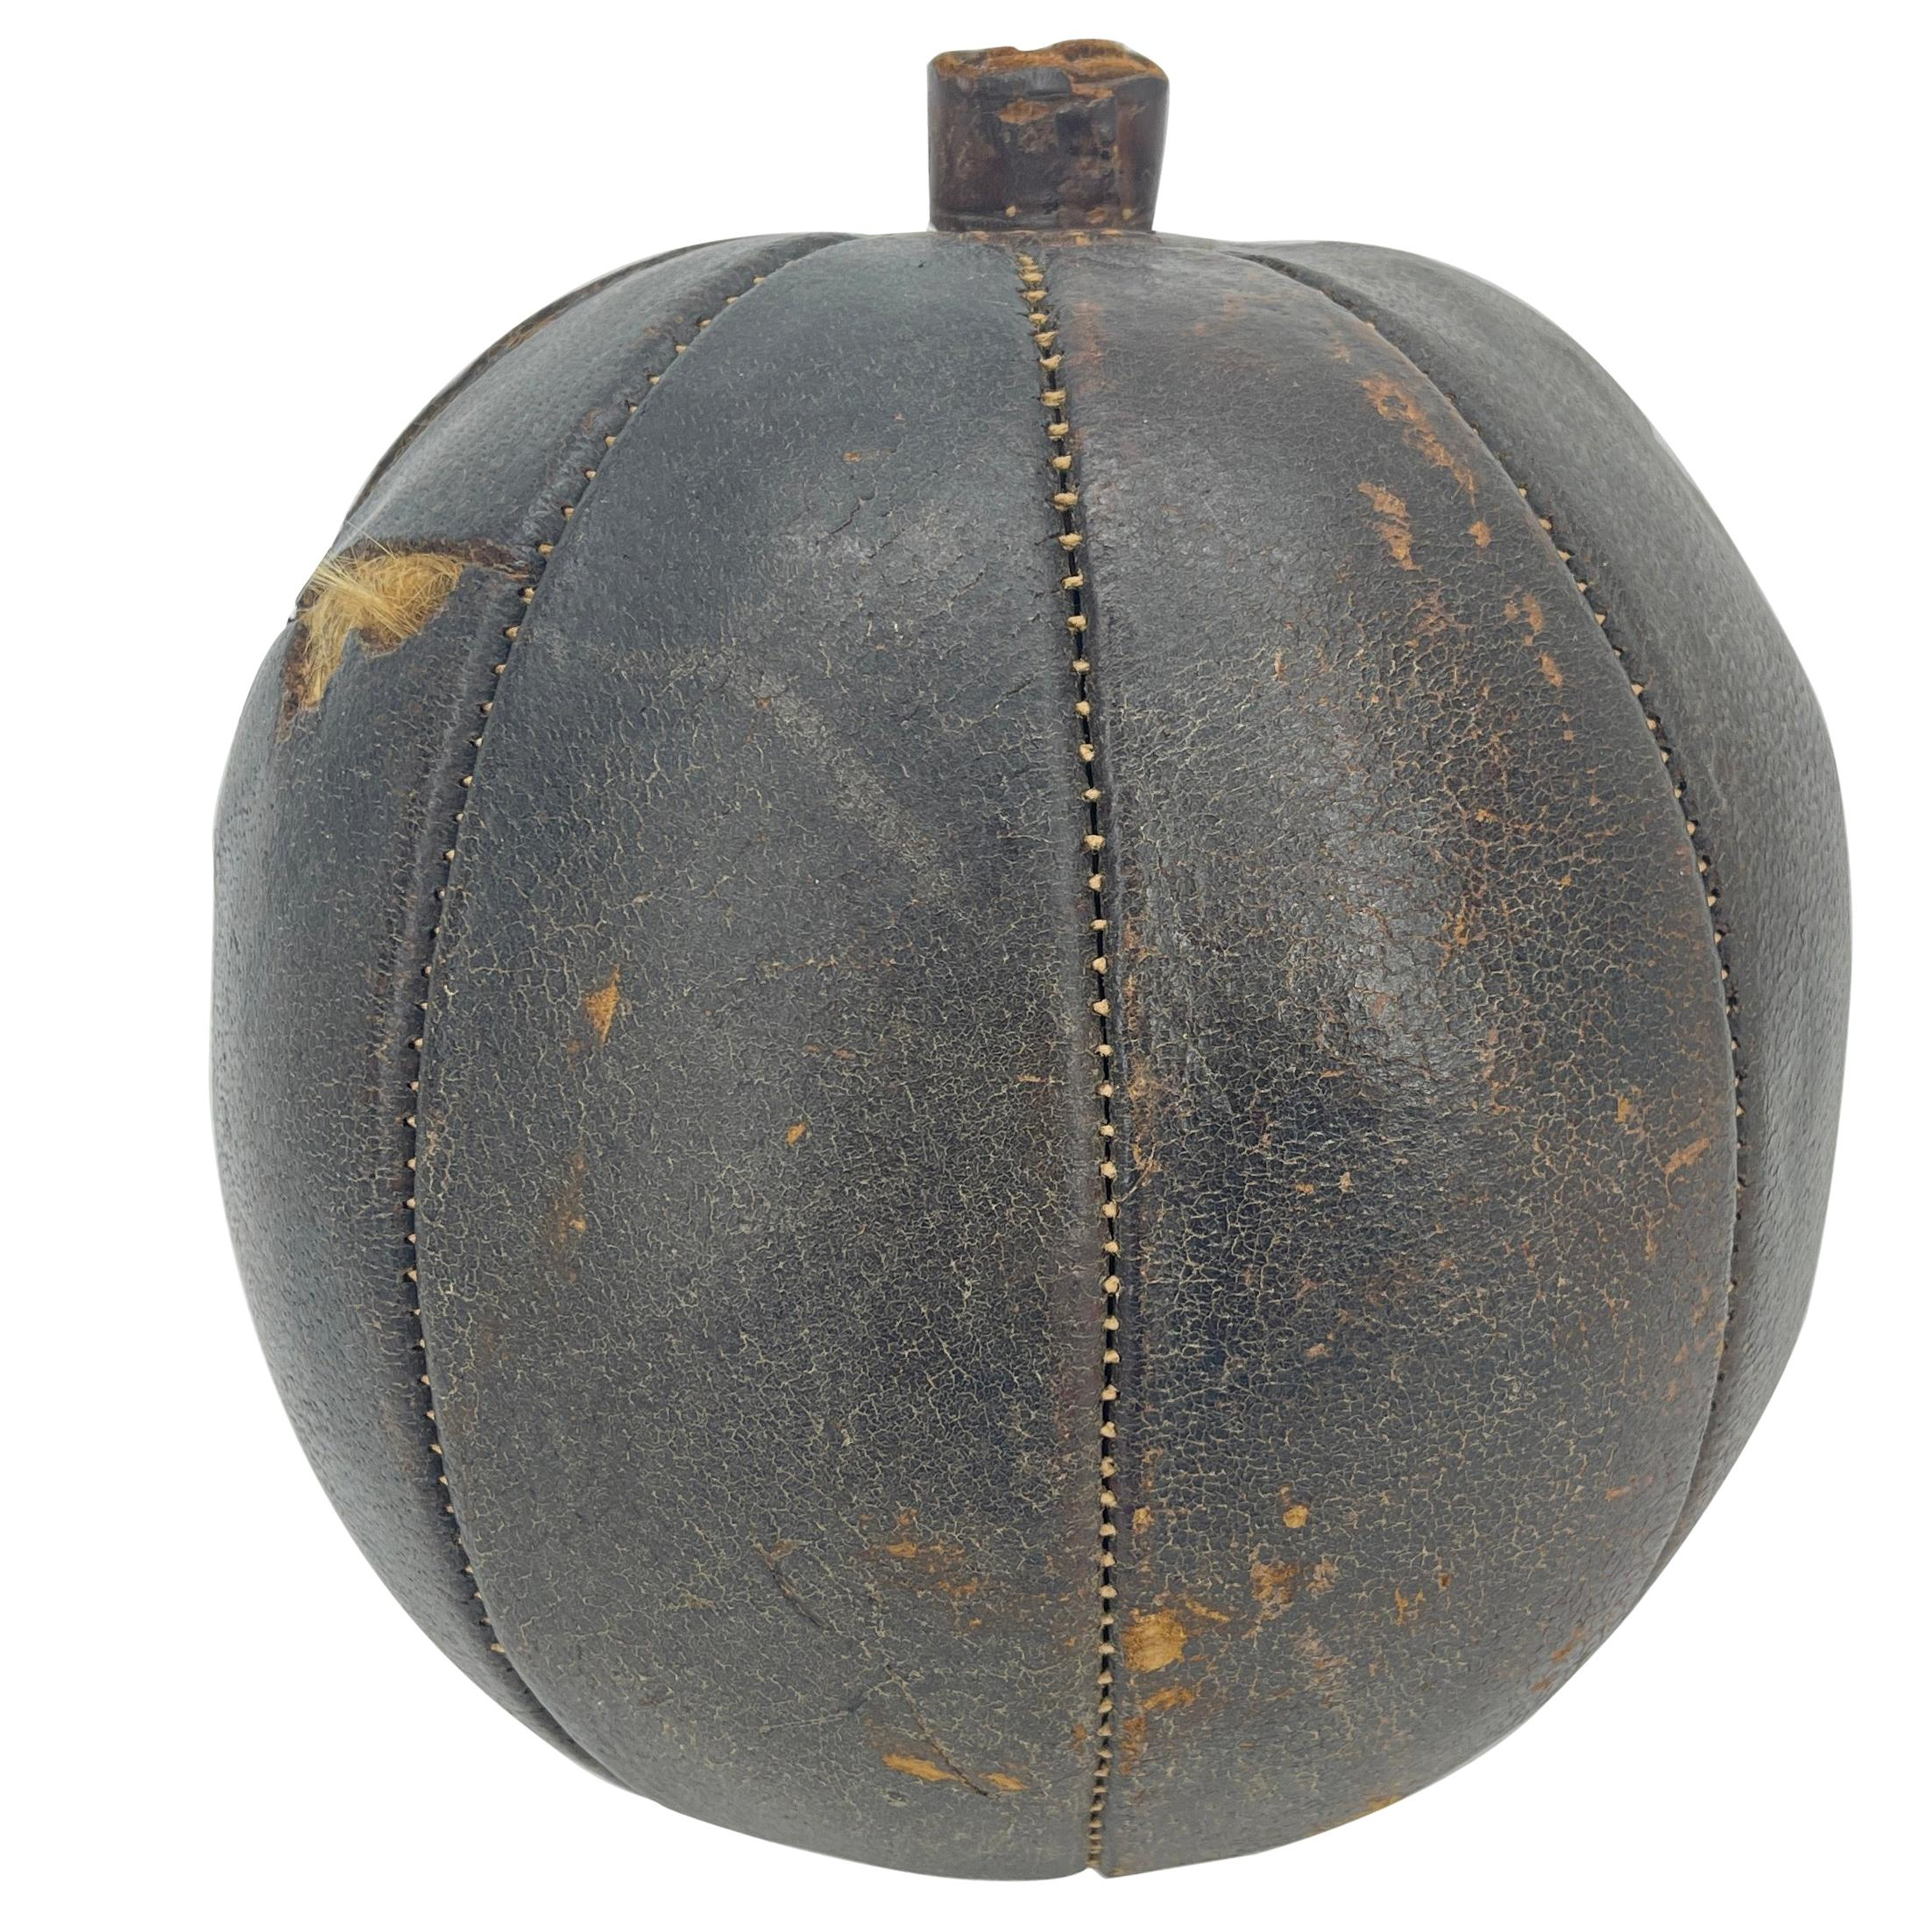 Abercrombie & Fitch Hand-Stitched Leather Pumpkin by Omersa & Company